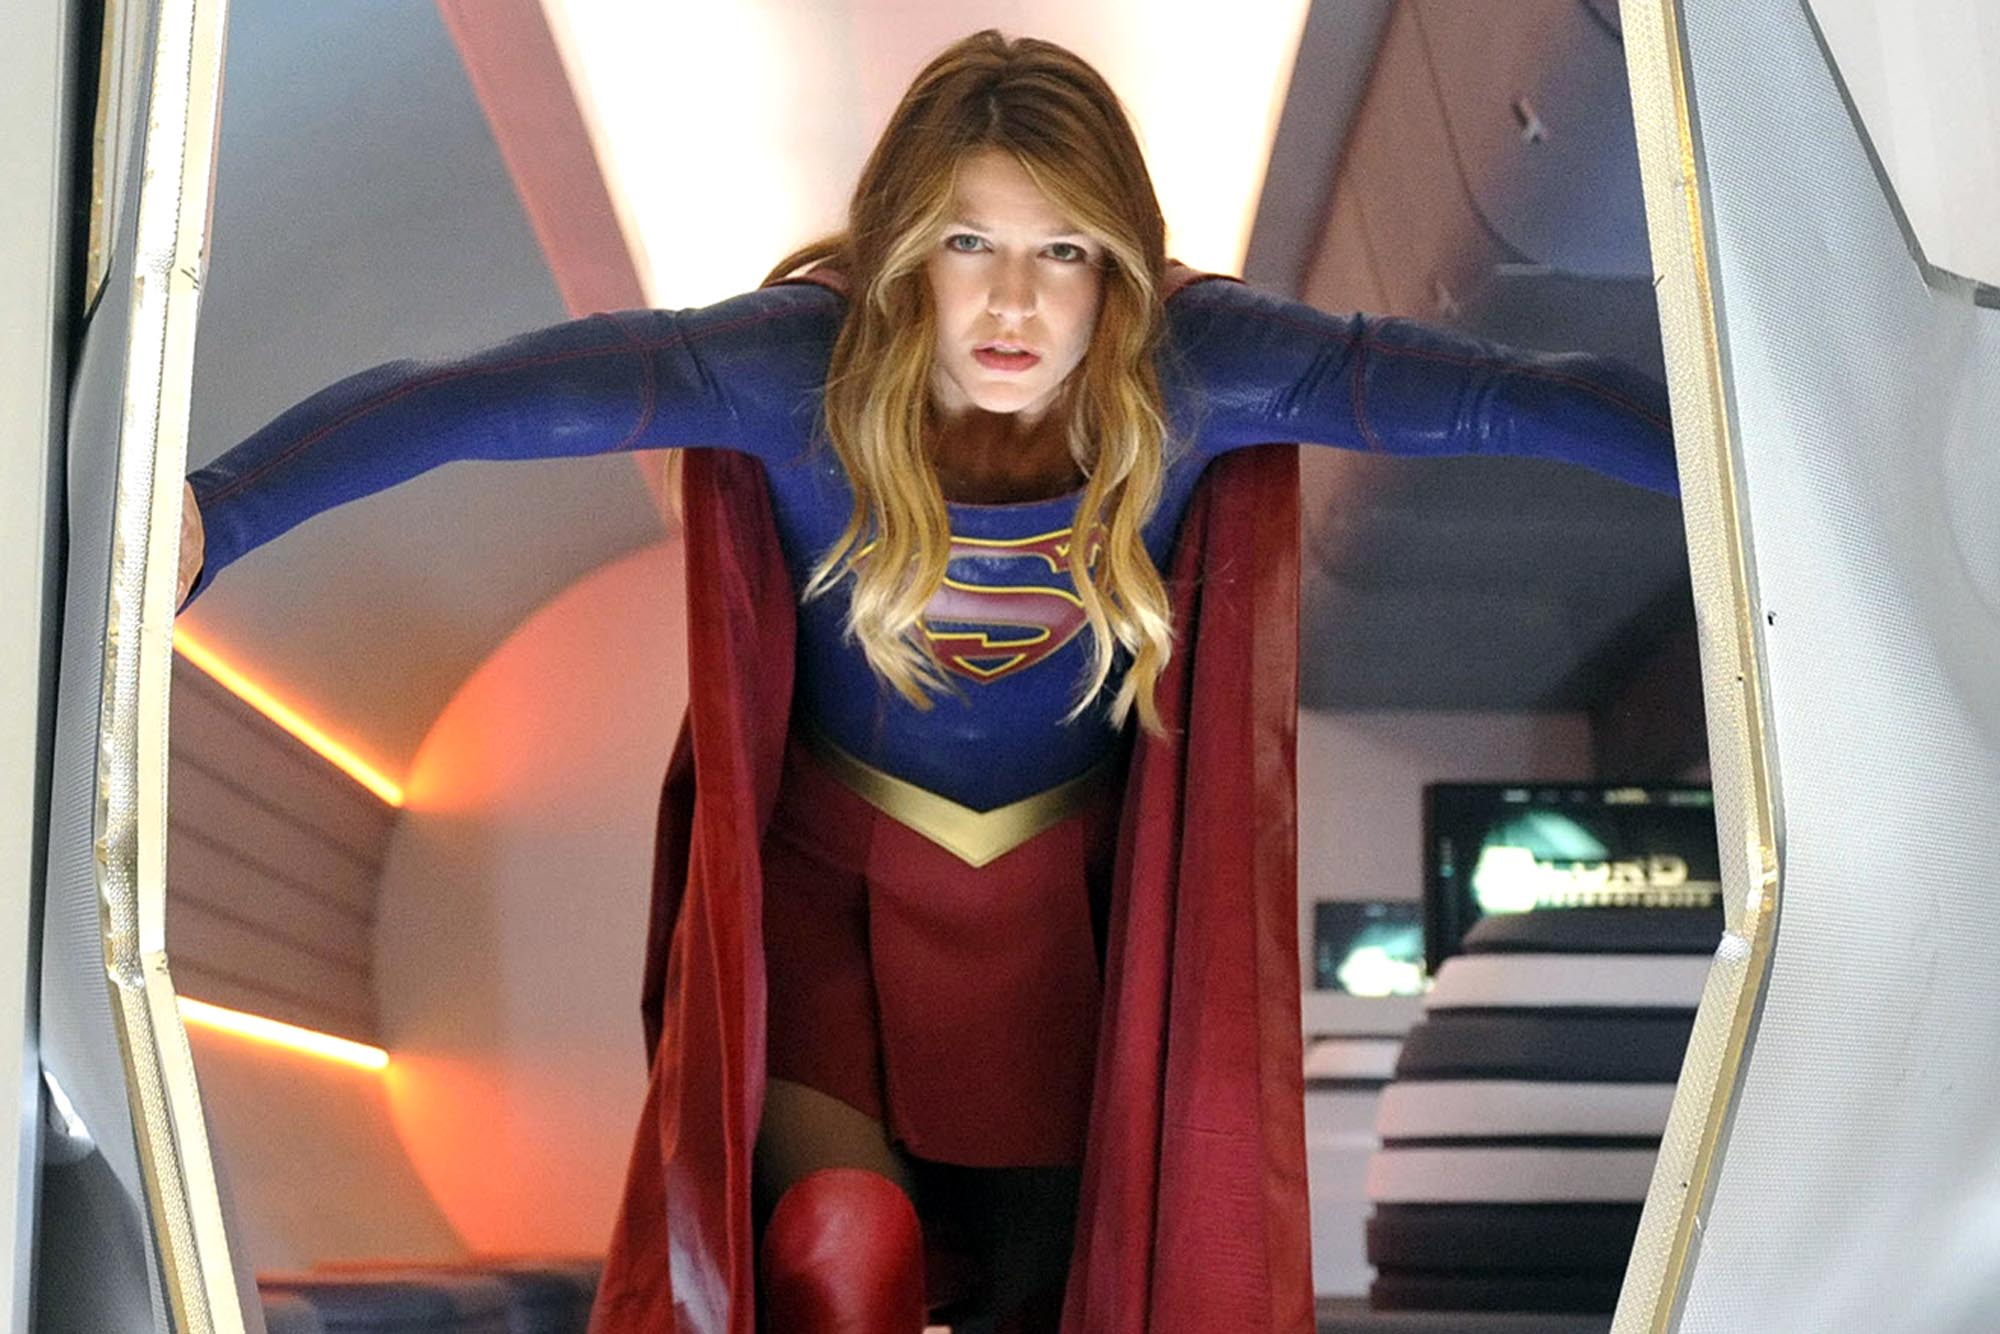 supergirl in an airplane supergirl in an airplane